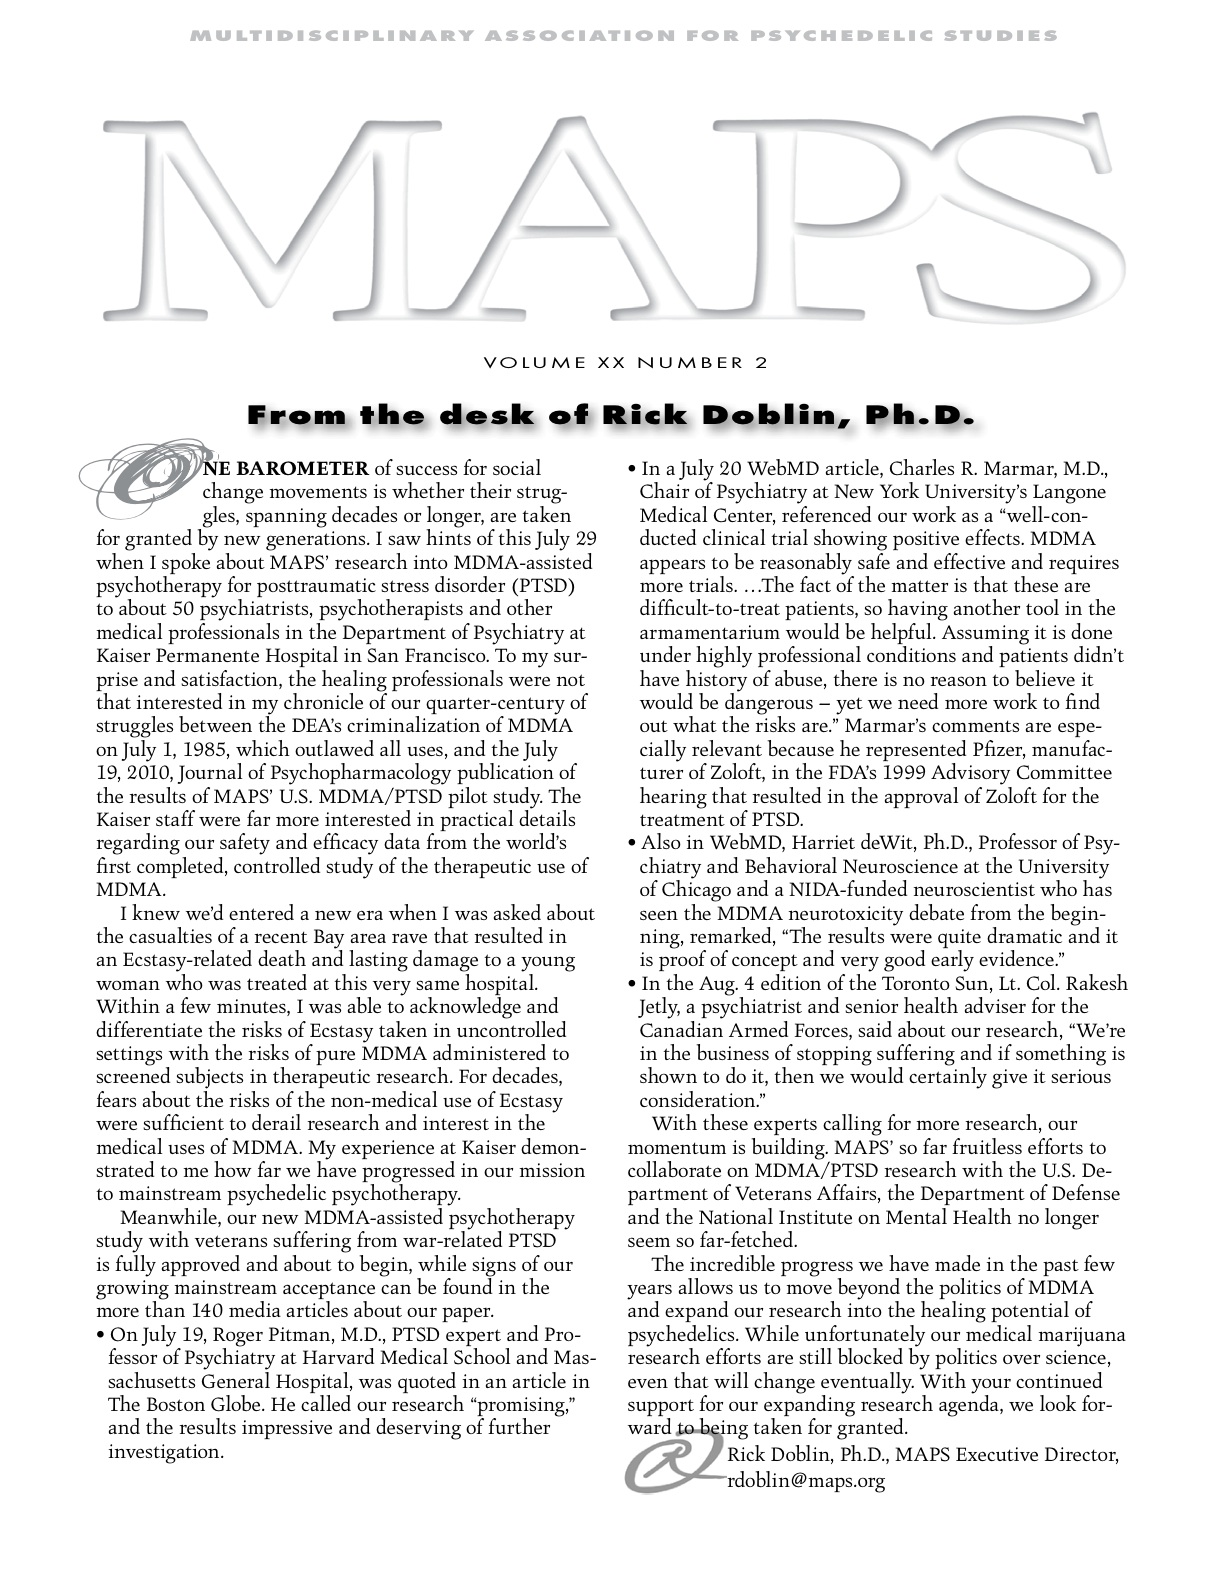 MAPS Bulletin Vol XX No 2: Summer 2010 - Front Cover Image - Psychedelic Art -  by